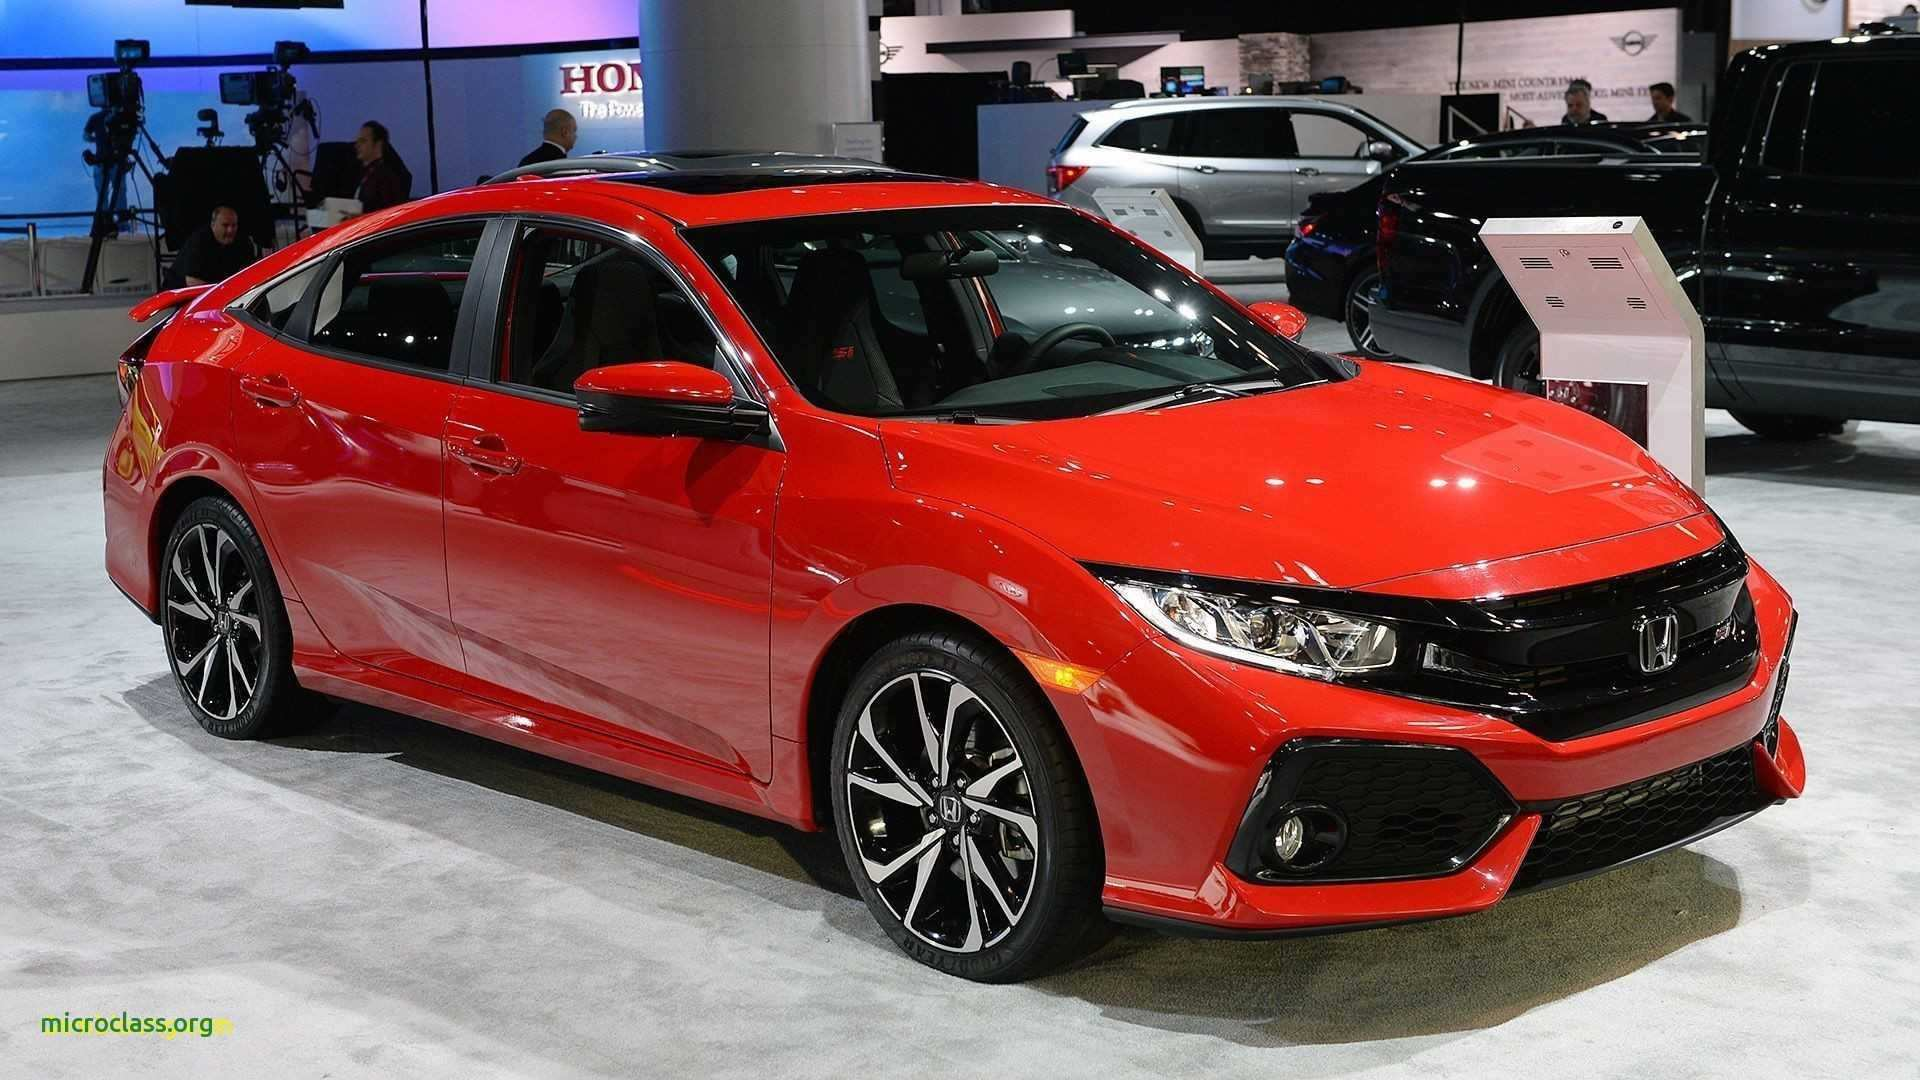 38 The Best 2020 Honda Civic Si History